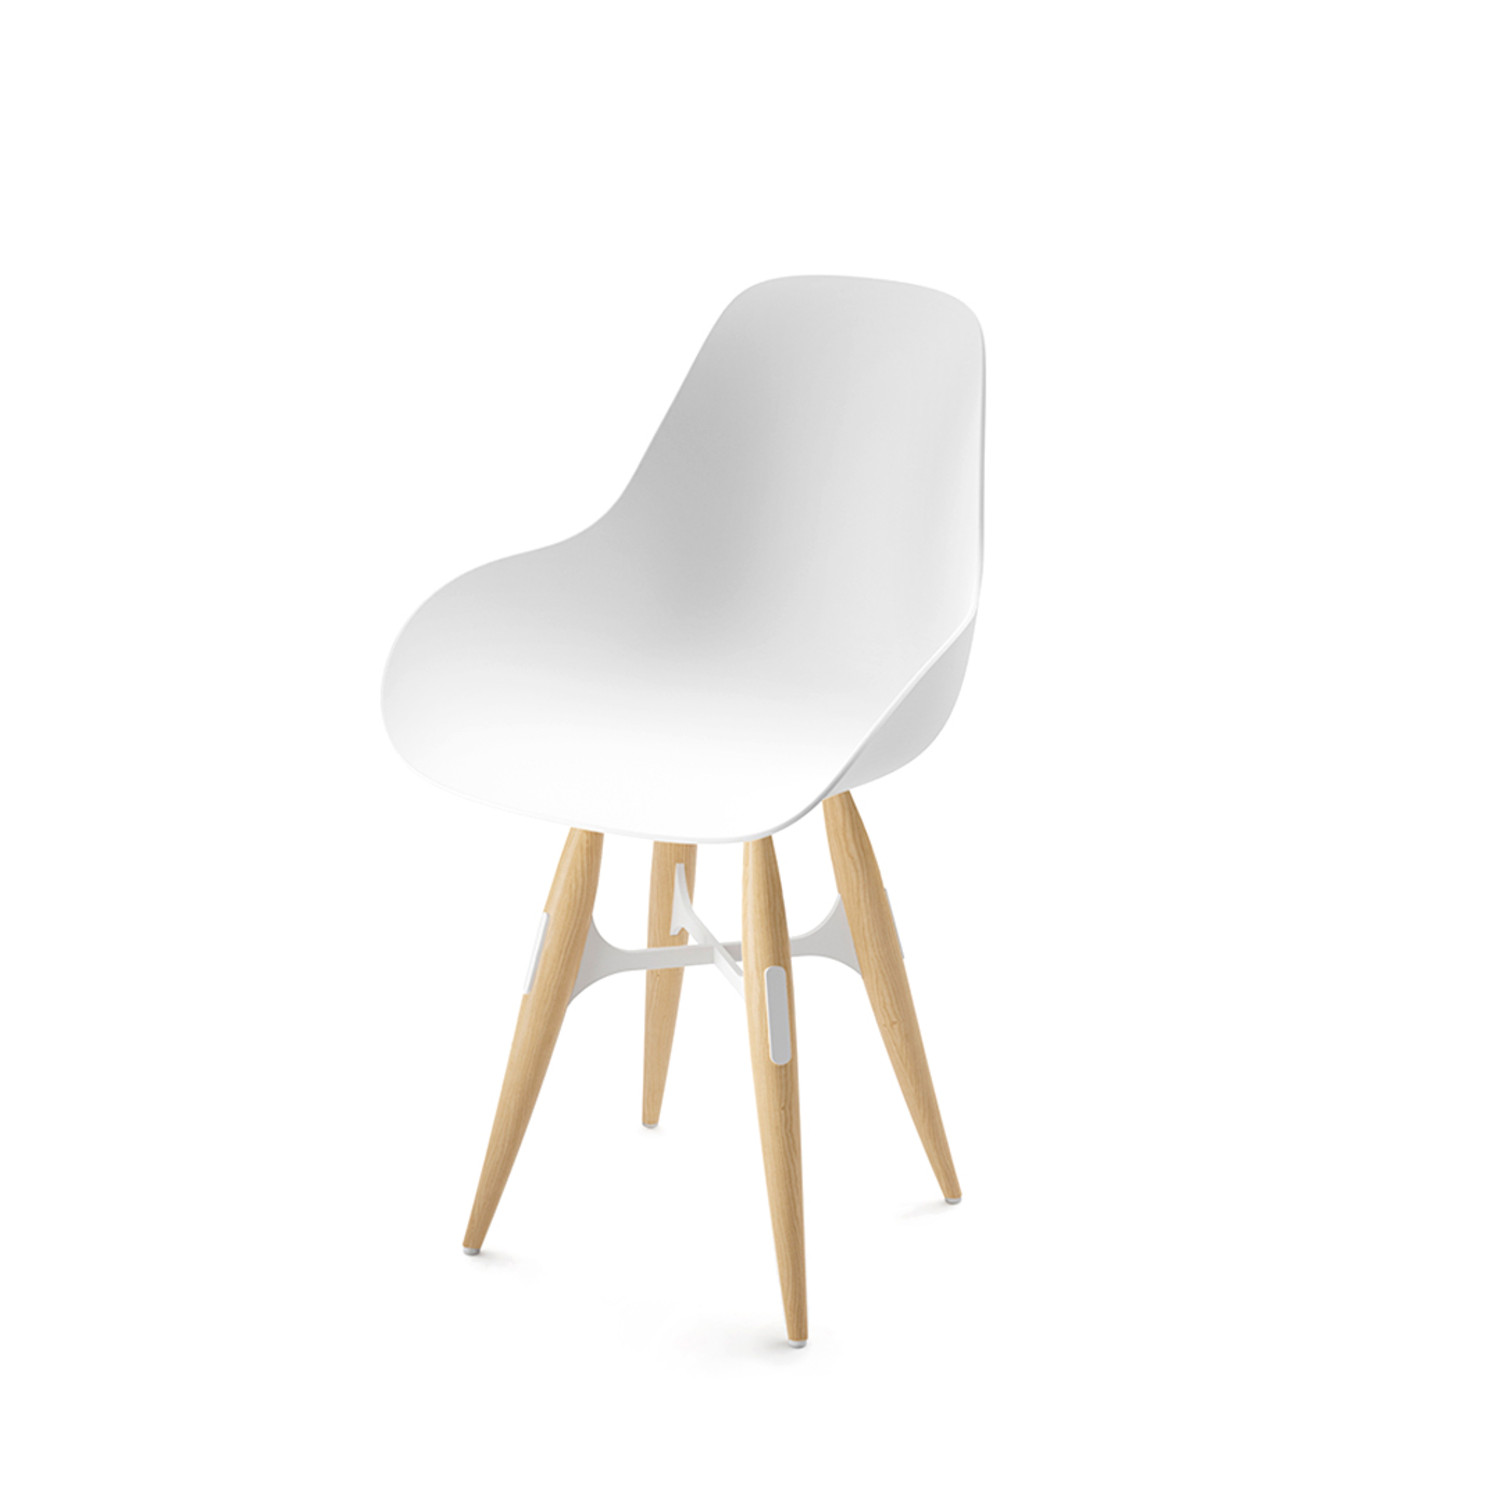 Sensational Zig Zag Dimple Chair White Kubikoff Touch Of Modern Ncnpc Chair Design For Home Ncnpcorg